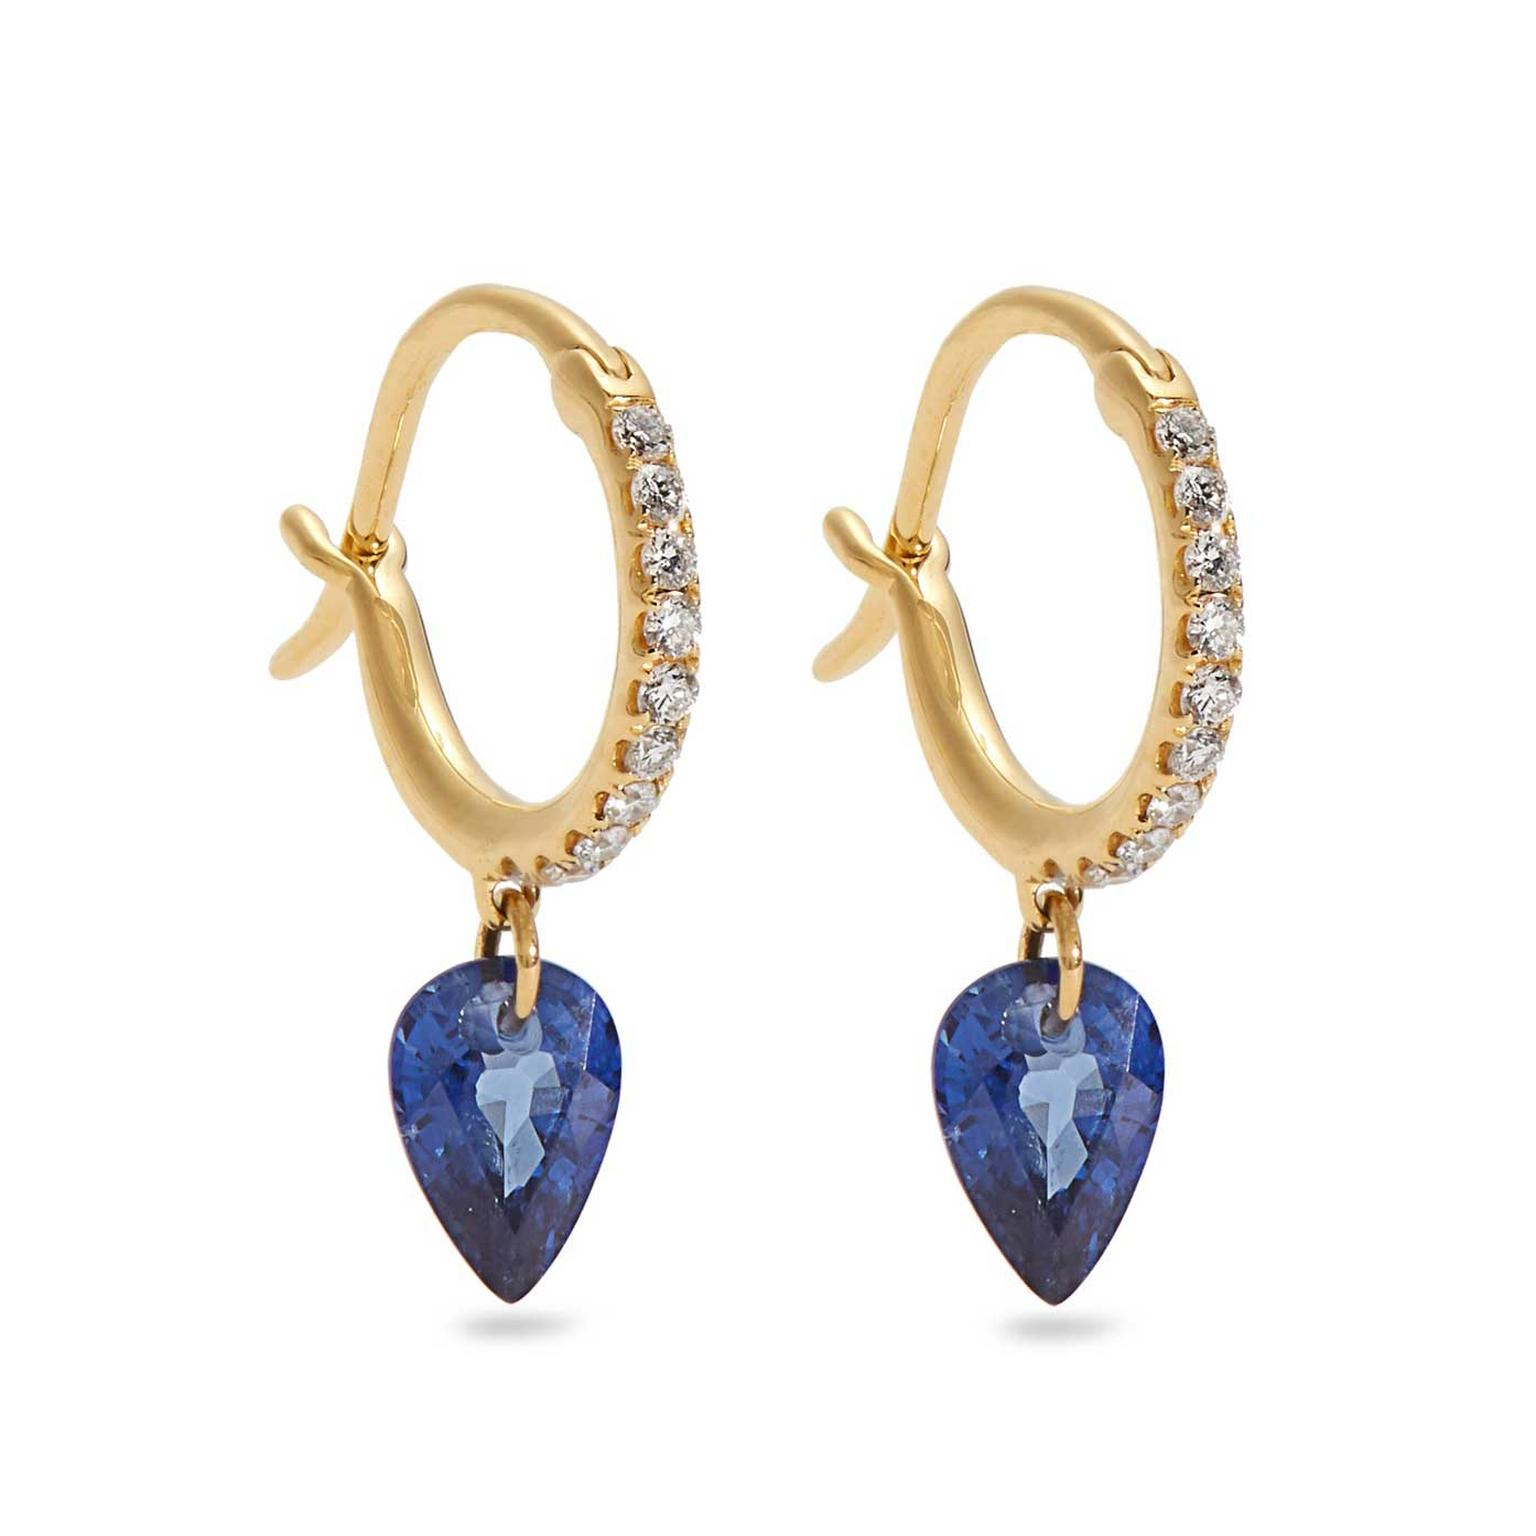 Raphaele Canot Set Free sapphire huggie earrings